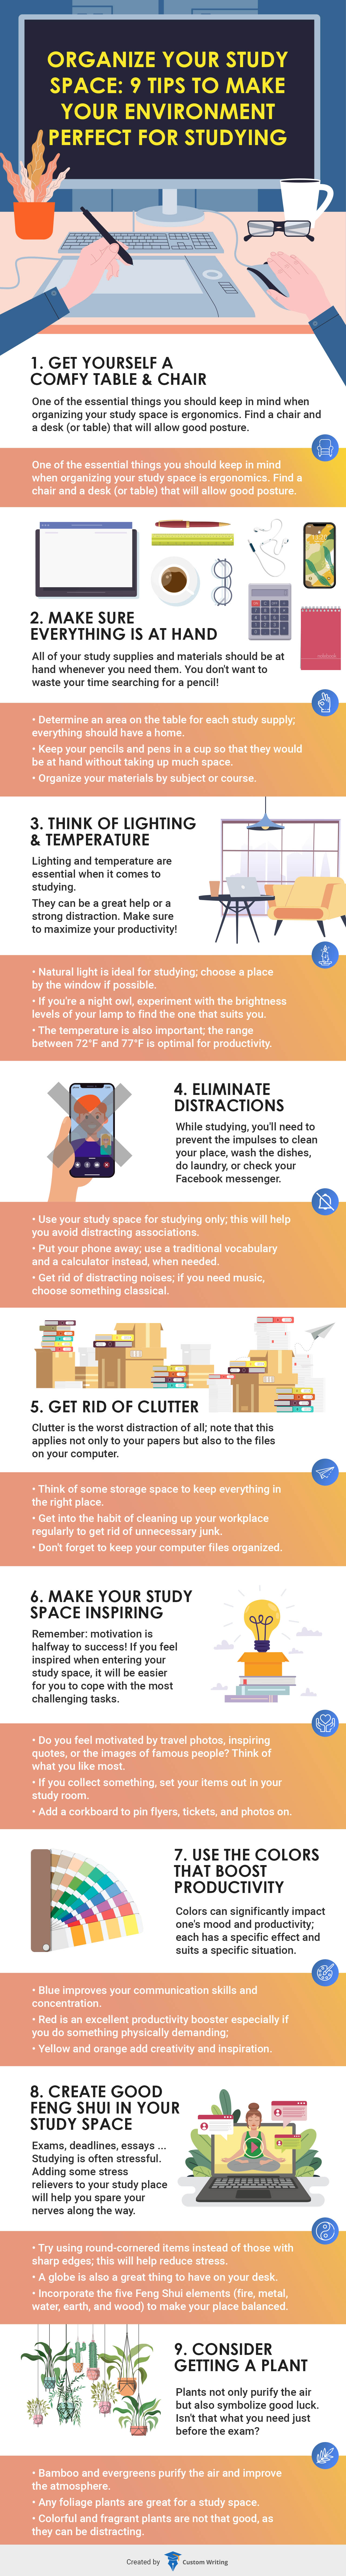 9 Tips to Create the Perfect Study Environment (Infographic)